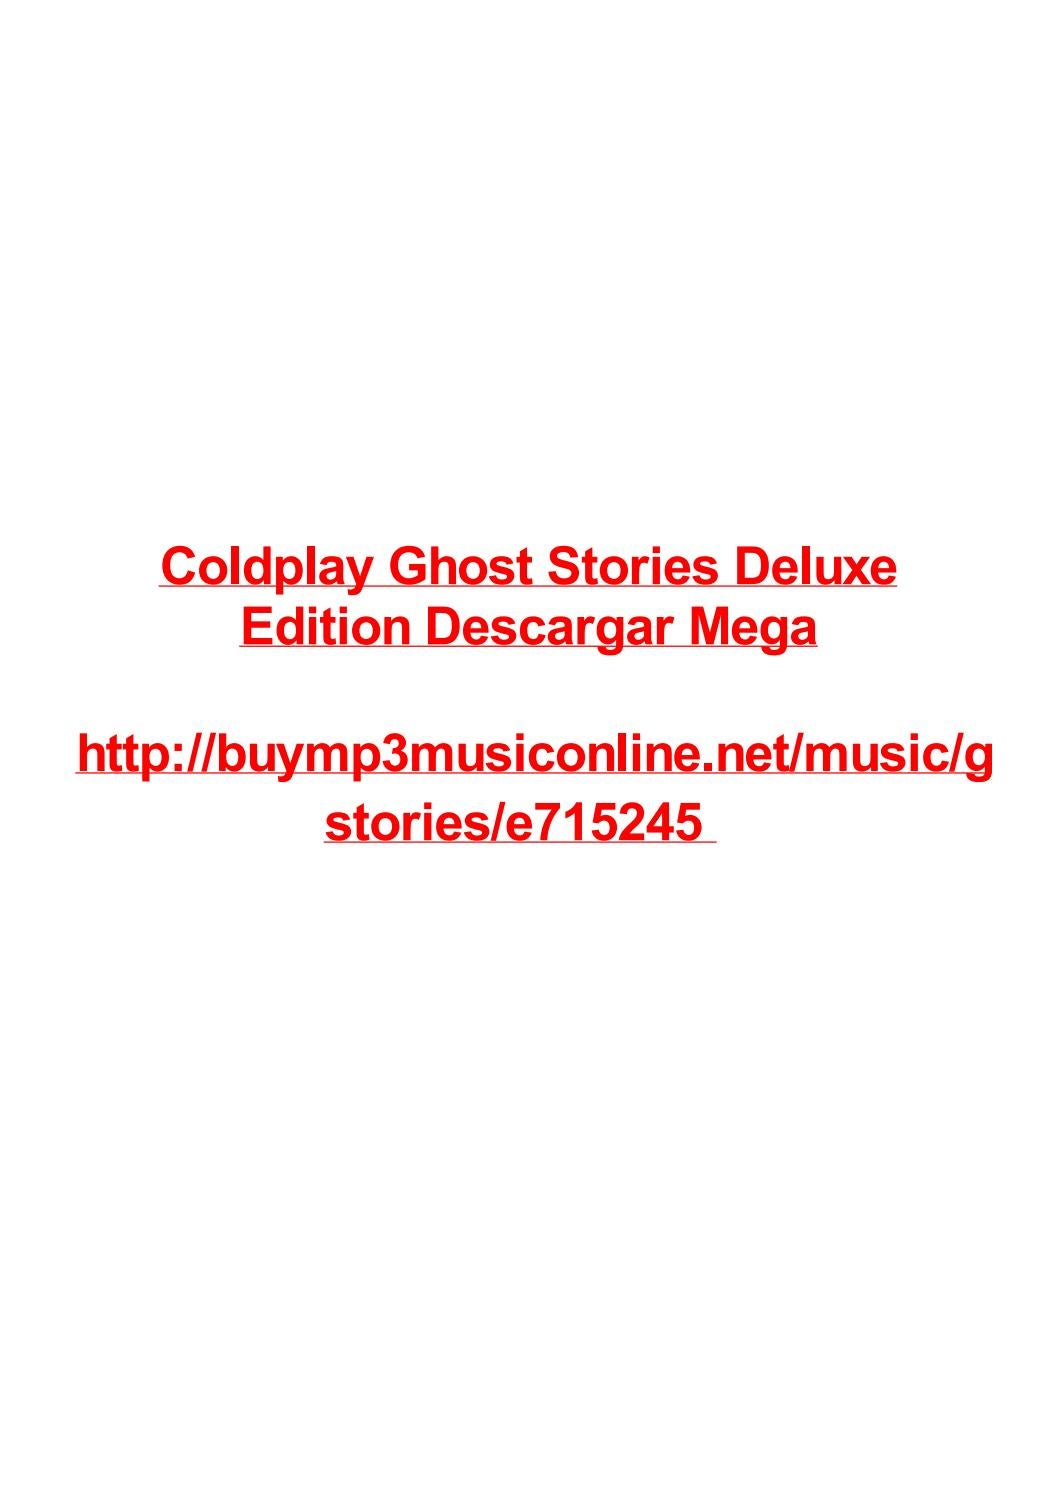 Coldplay Ghost Stories Deluxe Edition Descargar Mega By Max Polansky Issuu